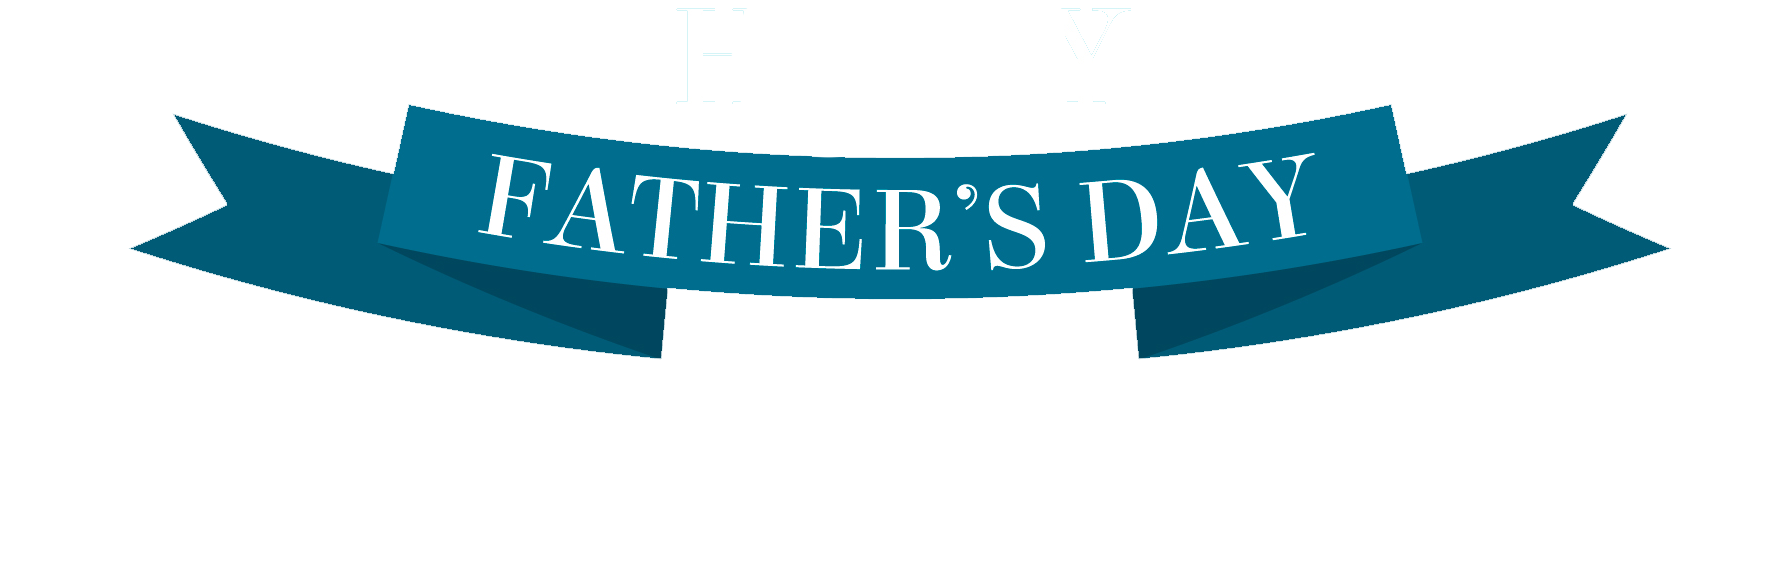 Father clipart basketball. Fathers day png peoplepng